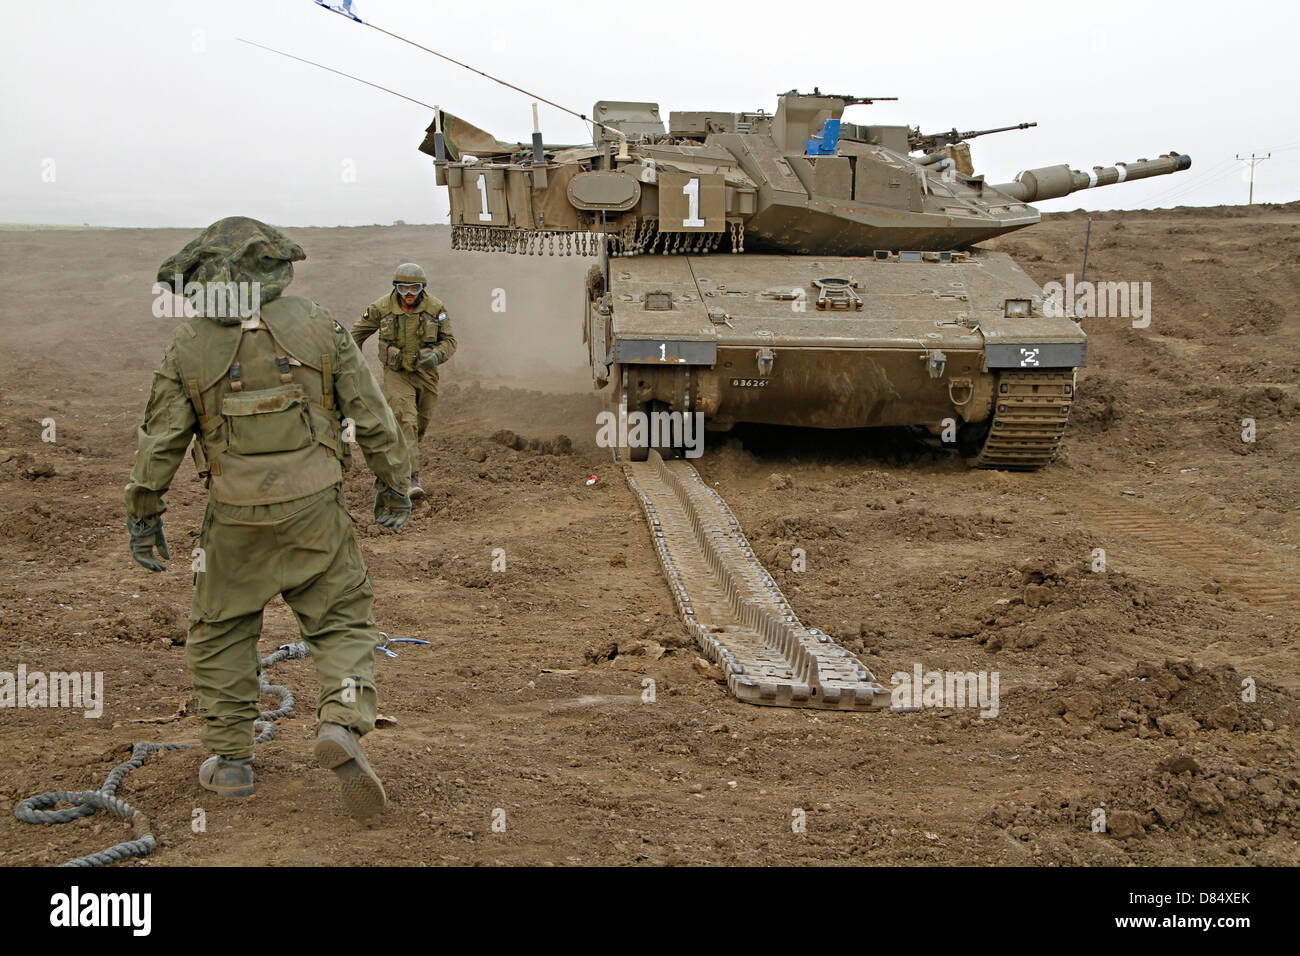 An Israel Defense Force Merkava Mark IV main battle tank during track replacement drill. - Stock Image